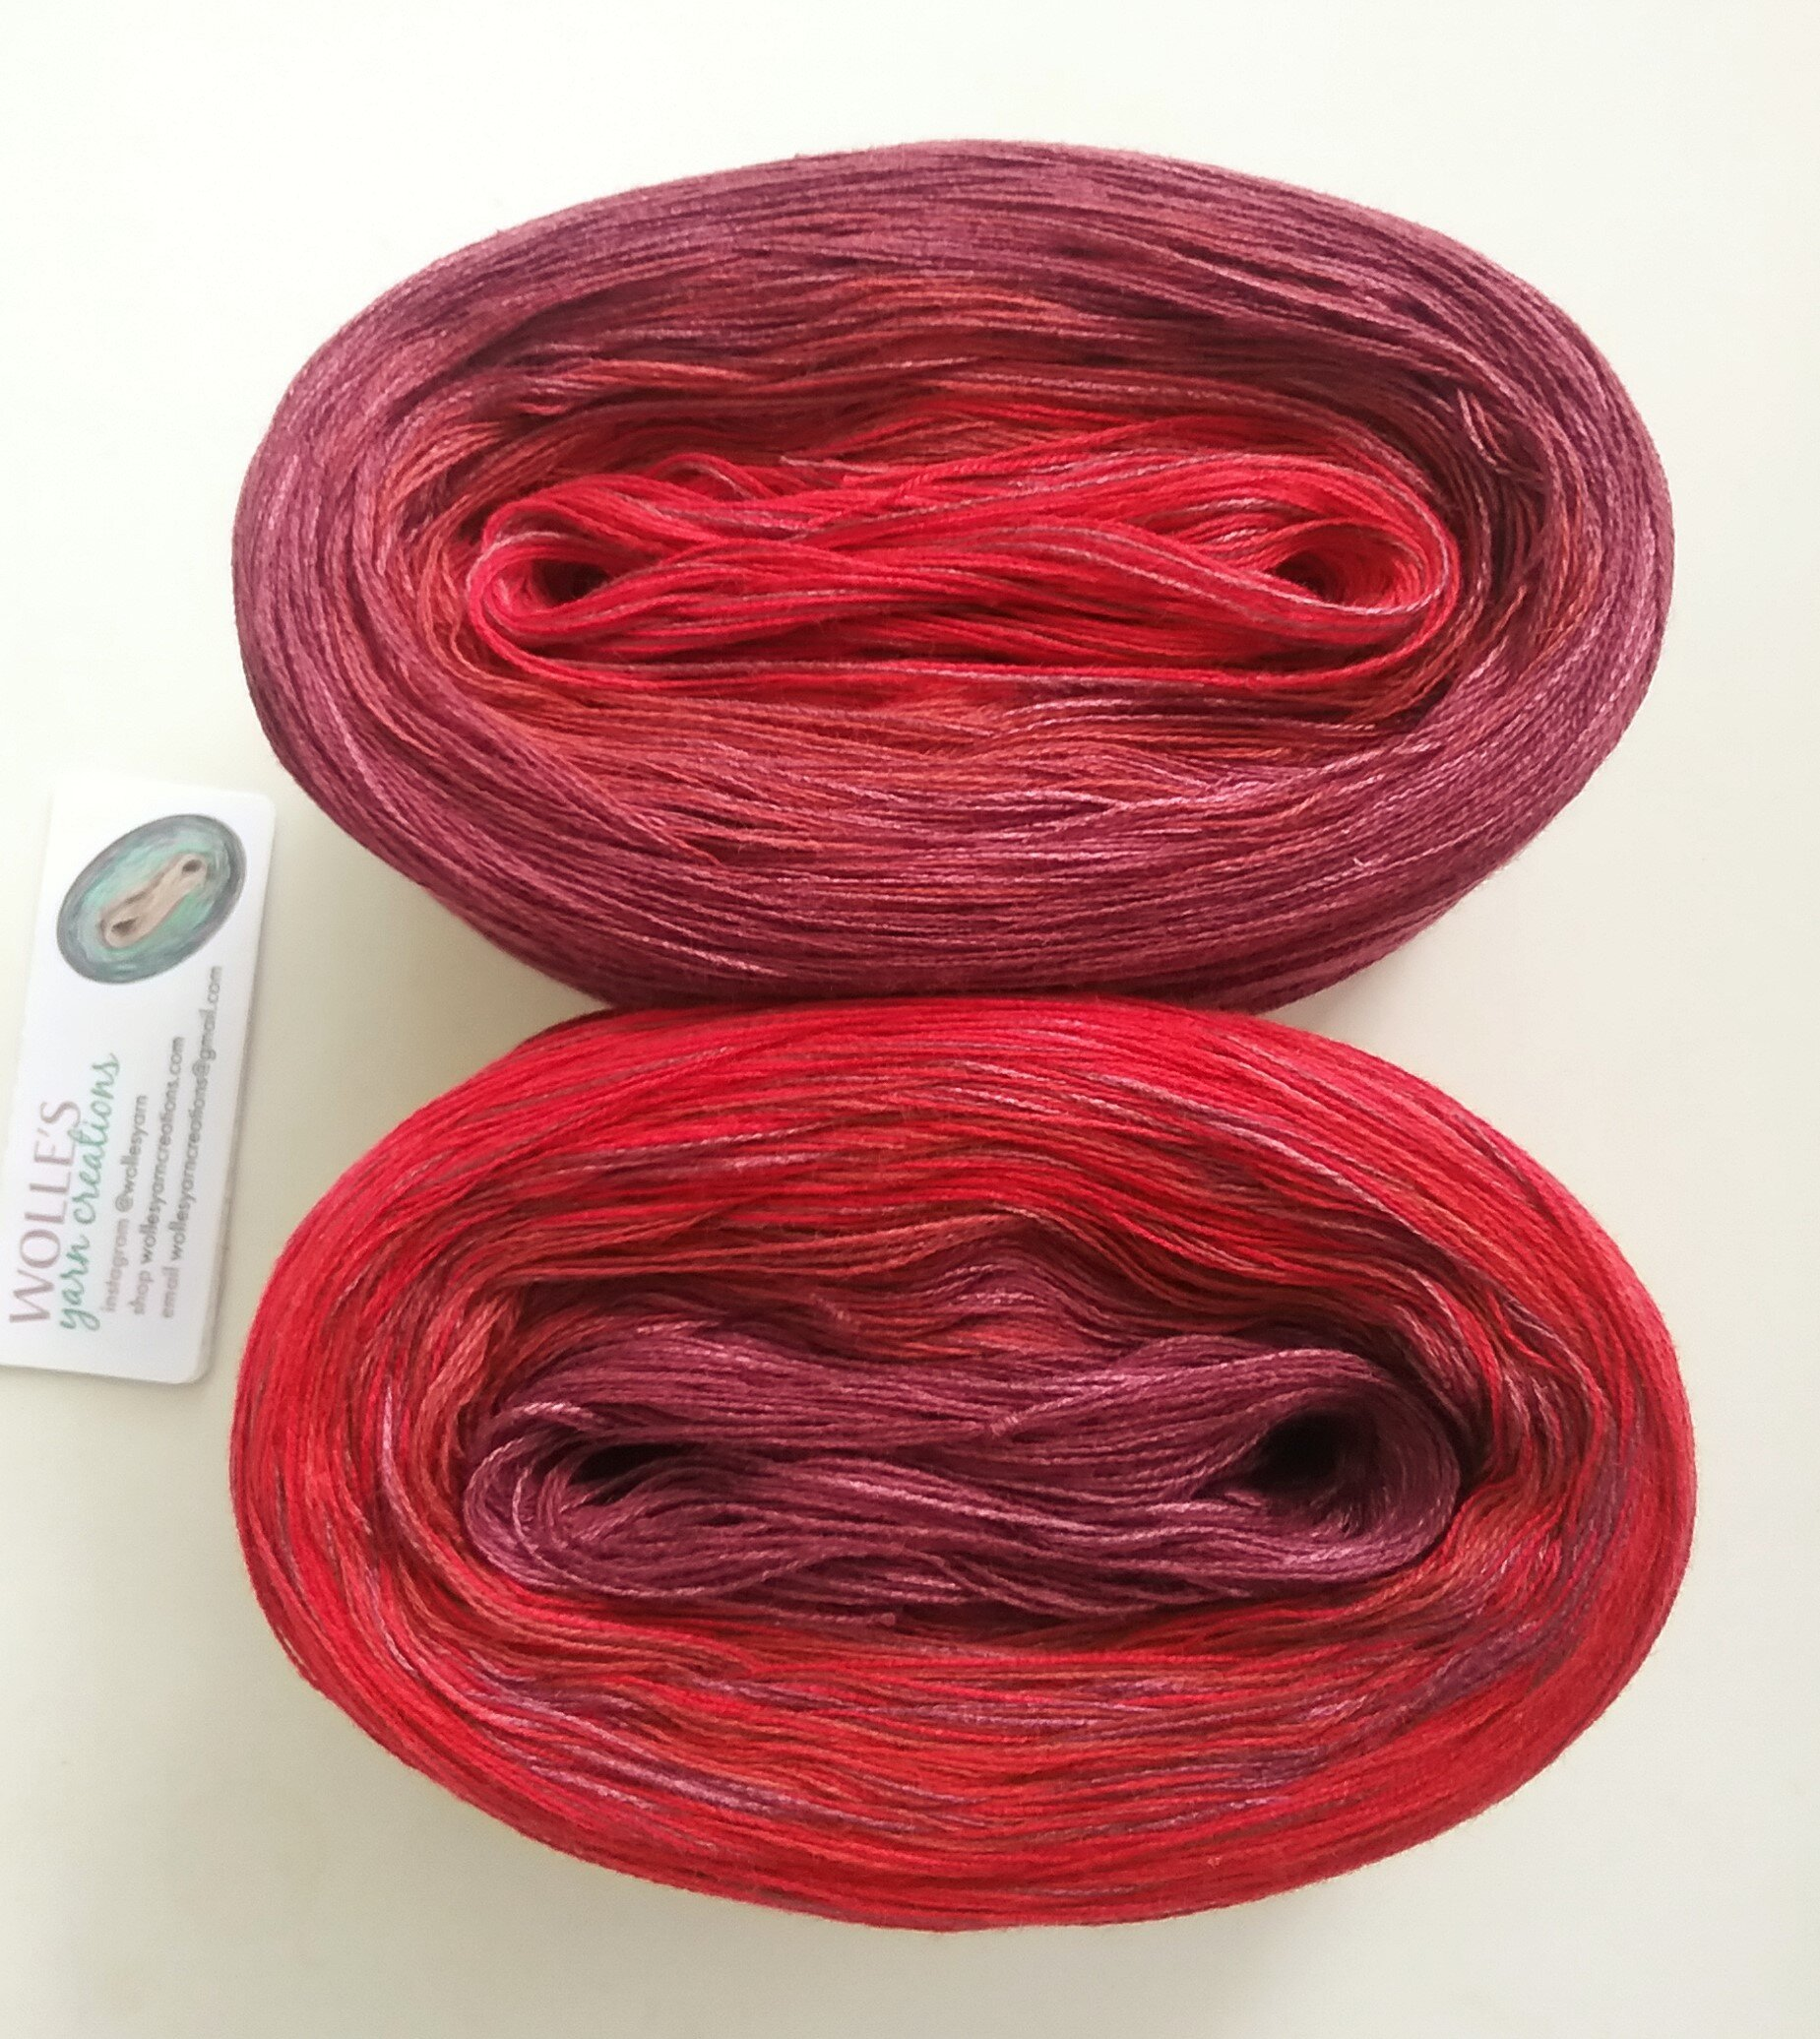 Color Changing CottonBamboo yarn 420 yards90 gr LILY BAMBOO Medley Fingering Weight